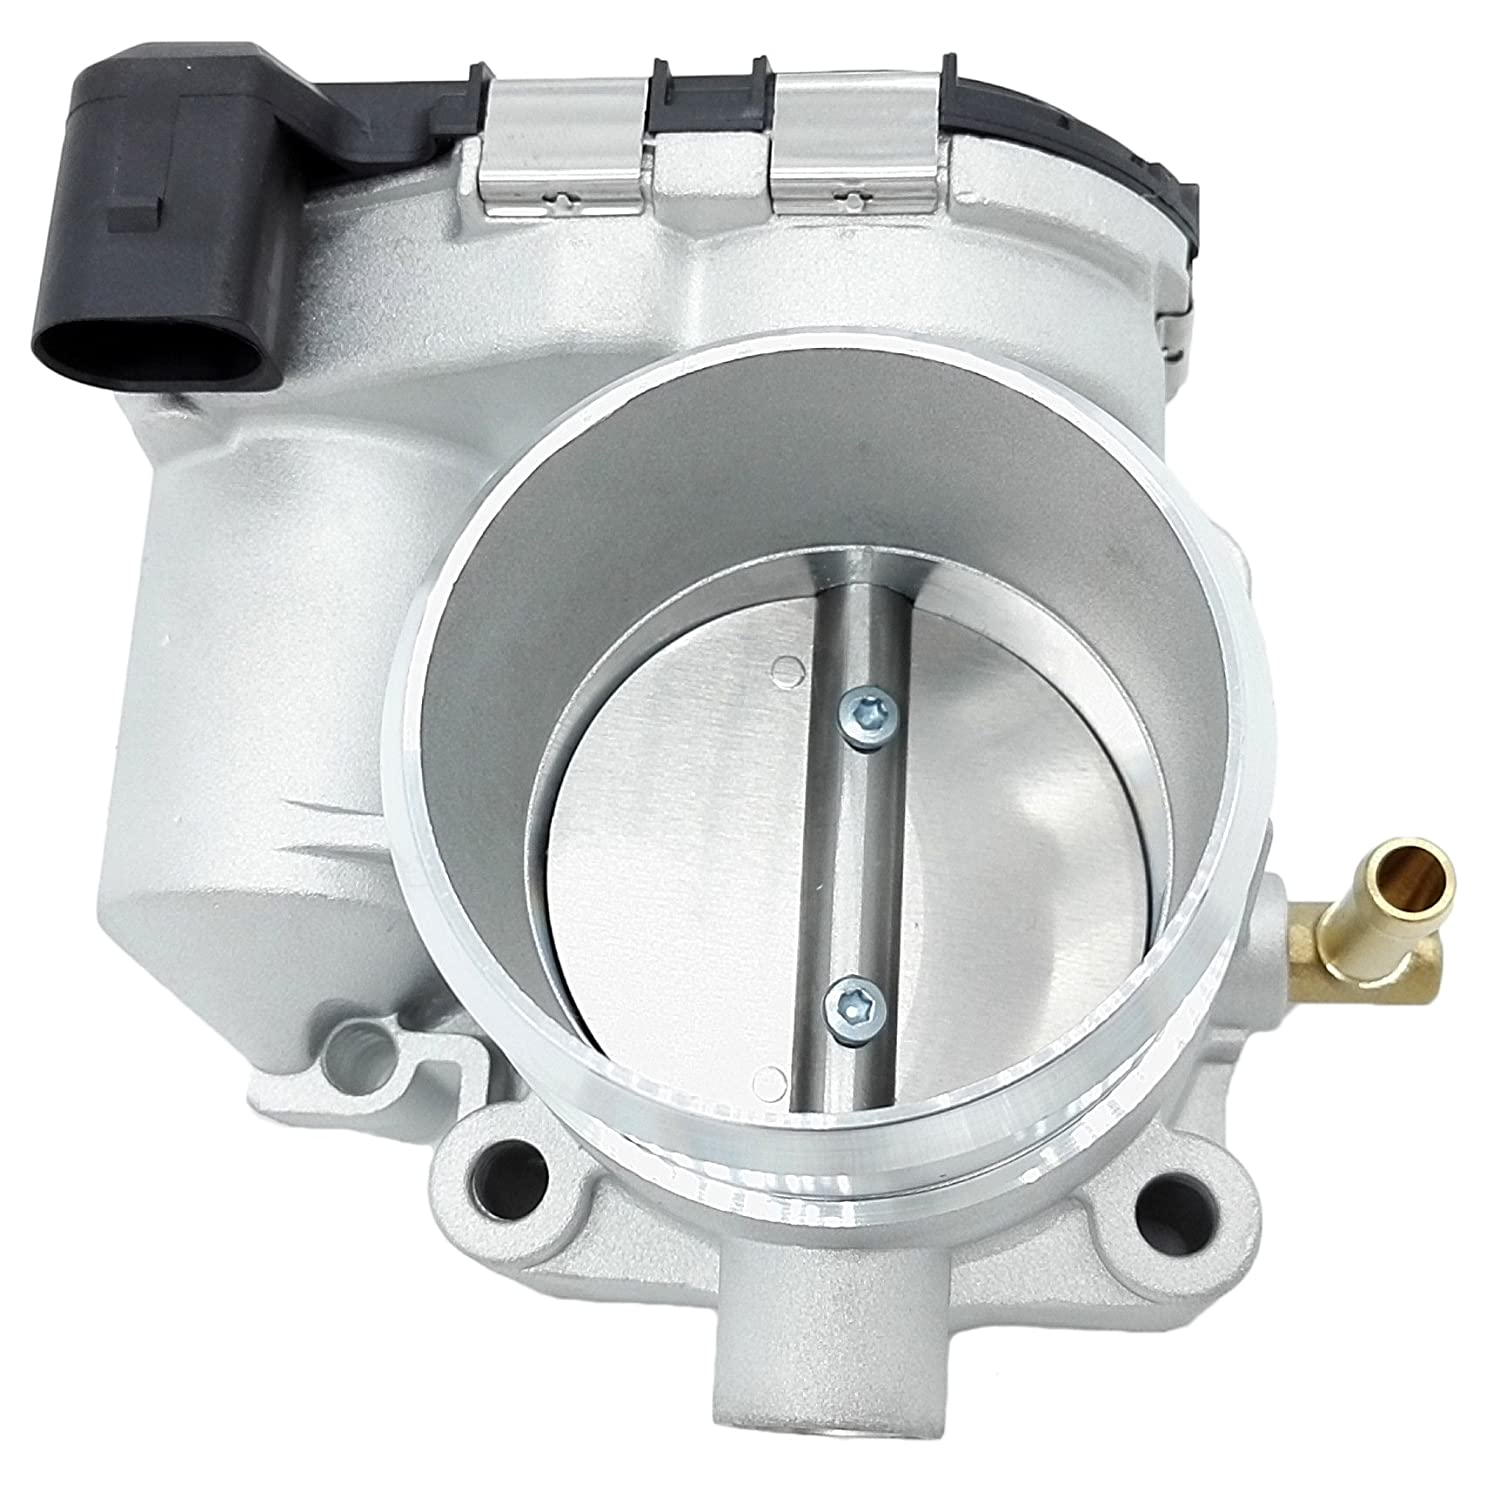 Okay Motor Fuel Injection Throttle Body For Vw Beetle 2000 Filter Golf Jetta Audi Tt Quattro 18t Automotive